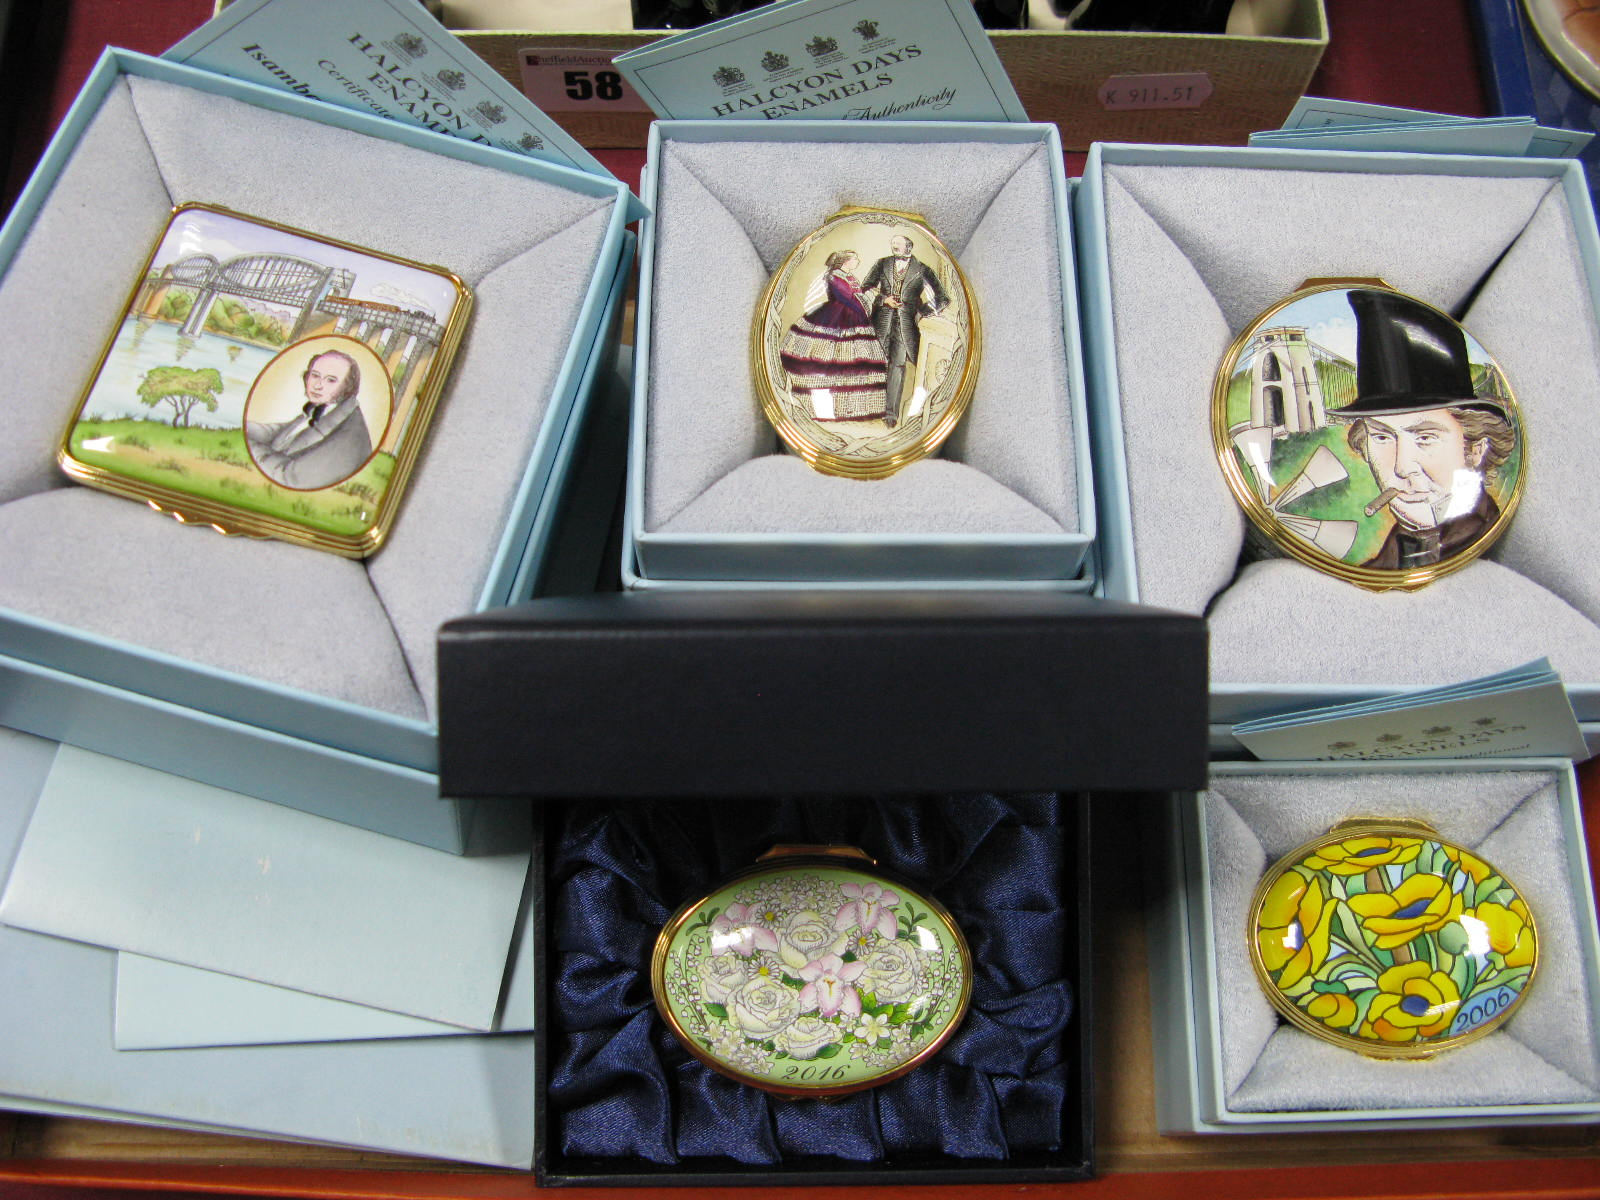 Lot 57 - Halcyon Days Enamelled Trinket Boxes, 'The Prince Consort', two I. K. Brunel, 2006 and 2016 year